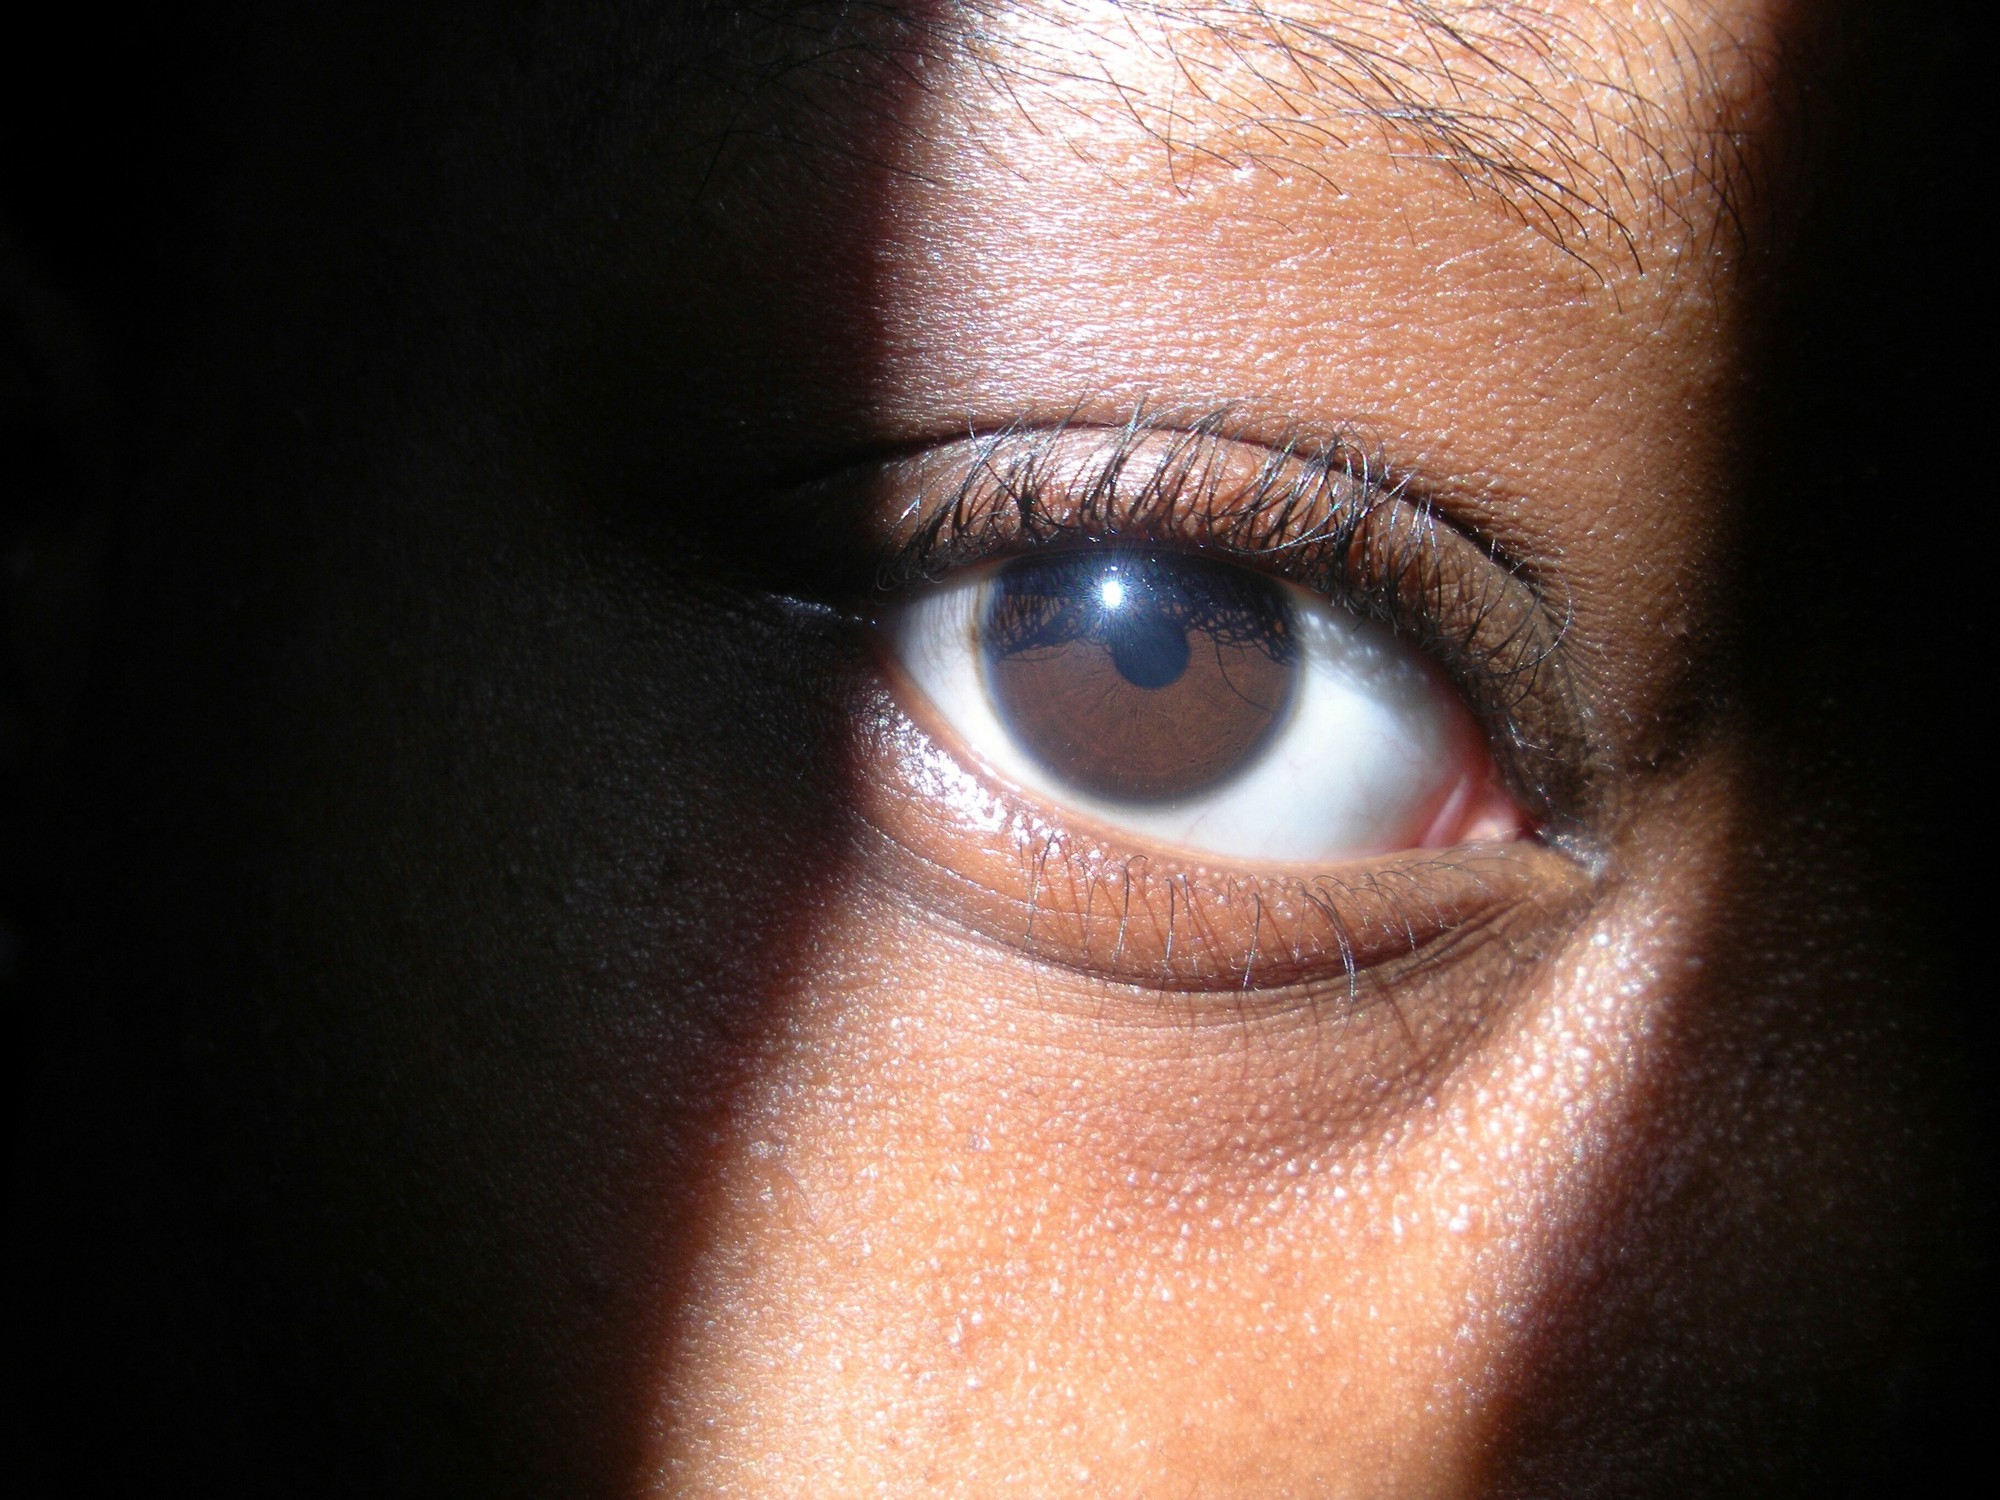 Closeup of a Black woman's eye, with light shining in a strip where her eyes is. Rest of face obscured by shadow.